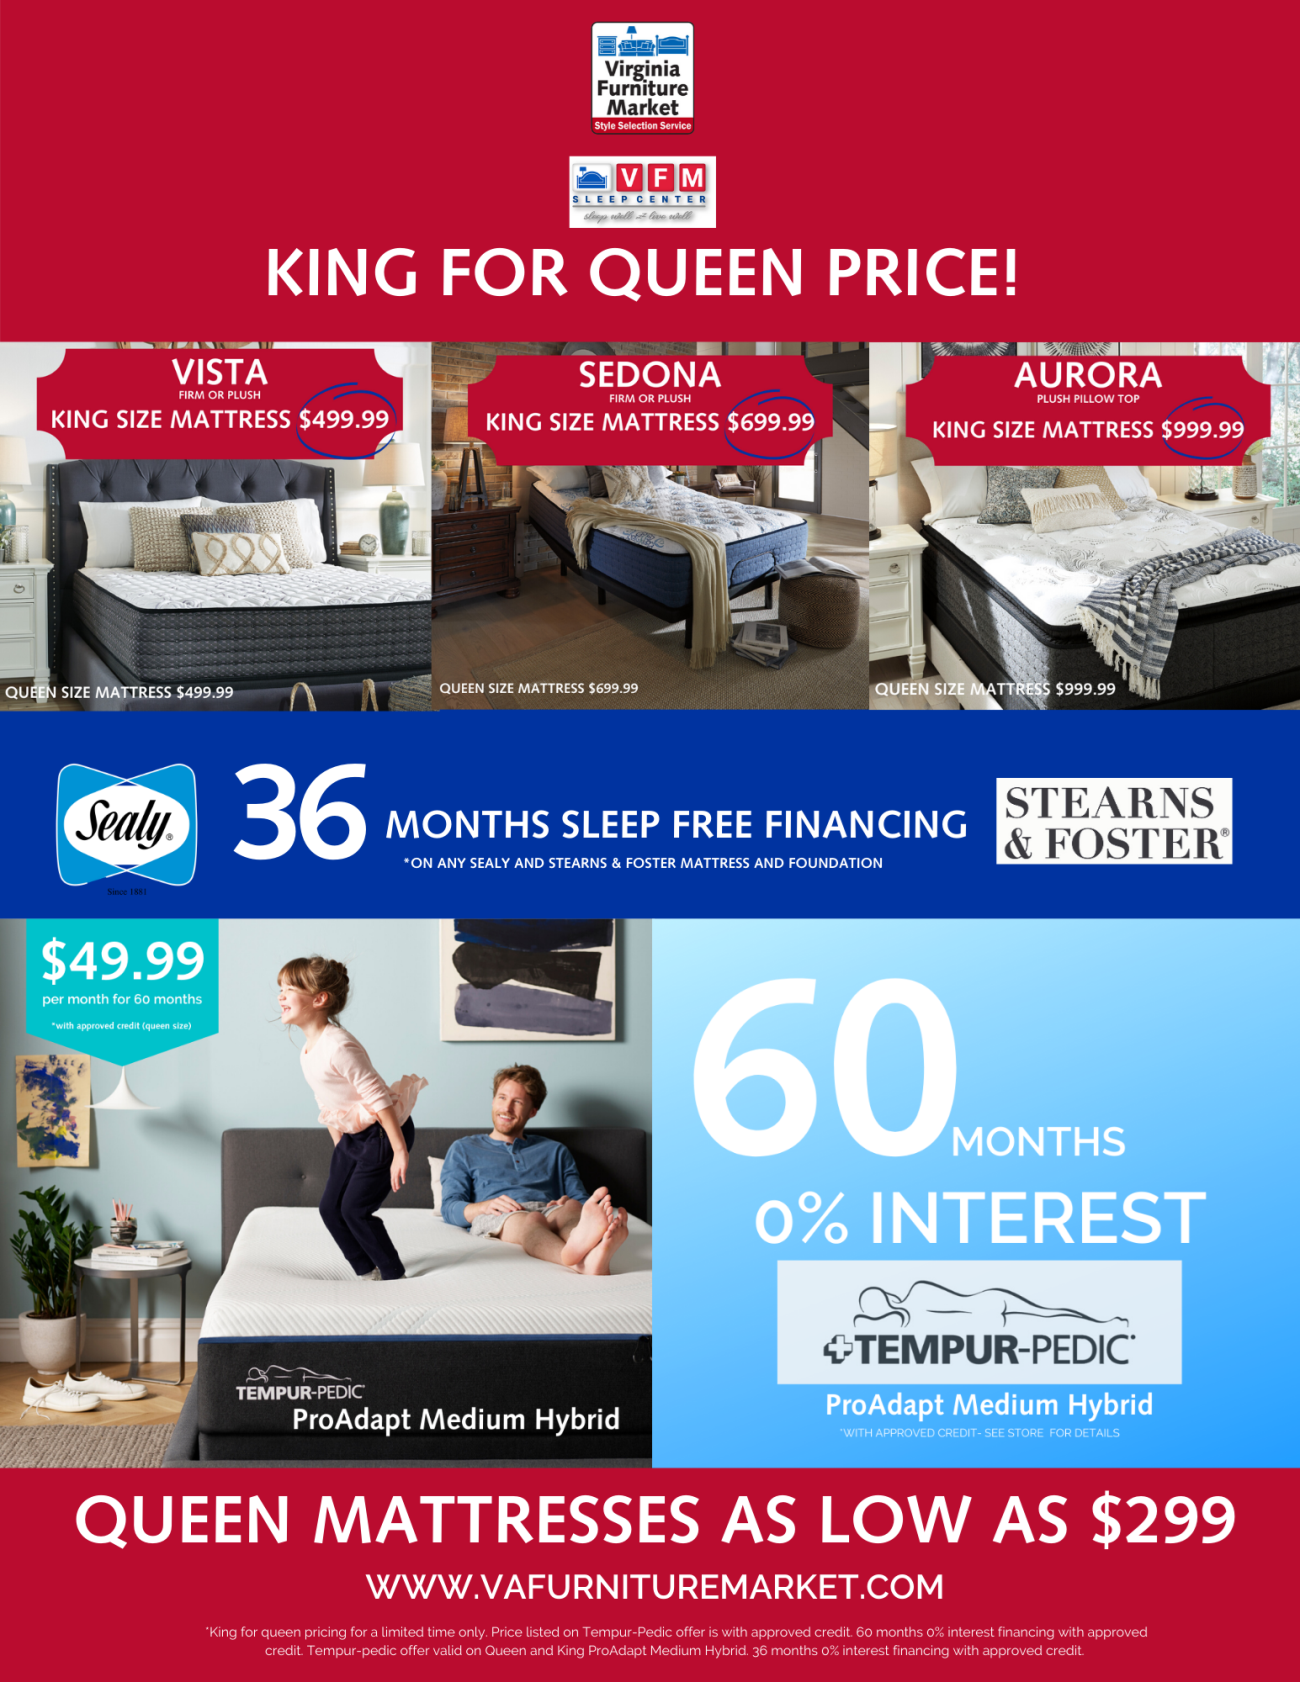 BEDDING PROMOTIONS